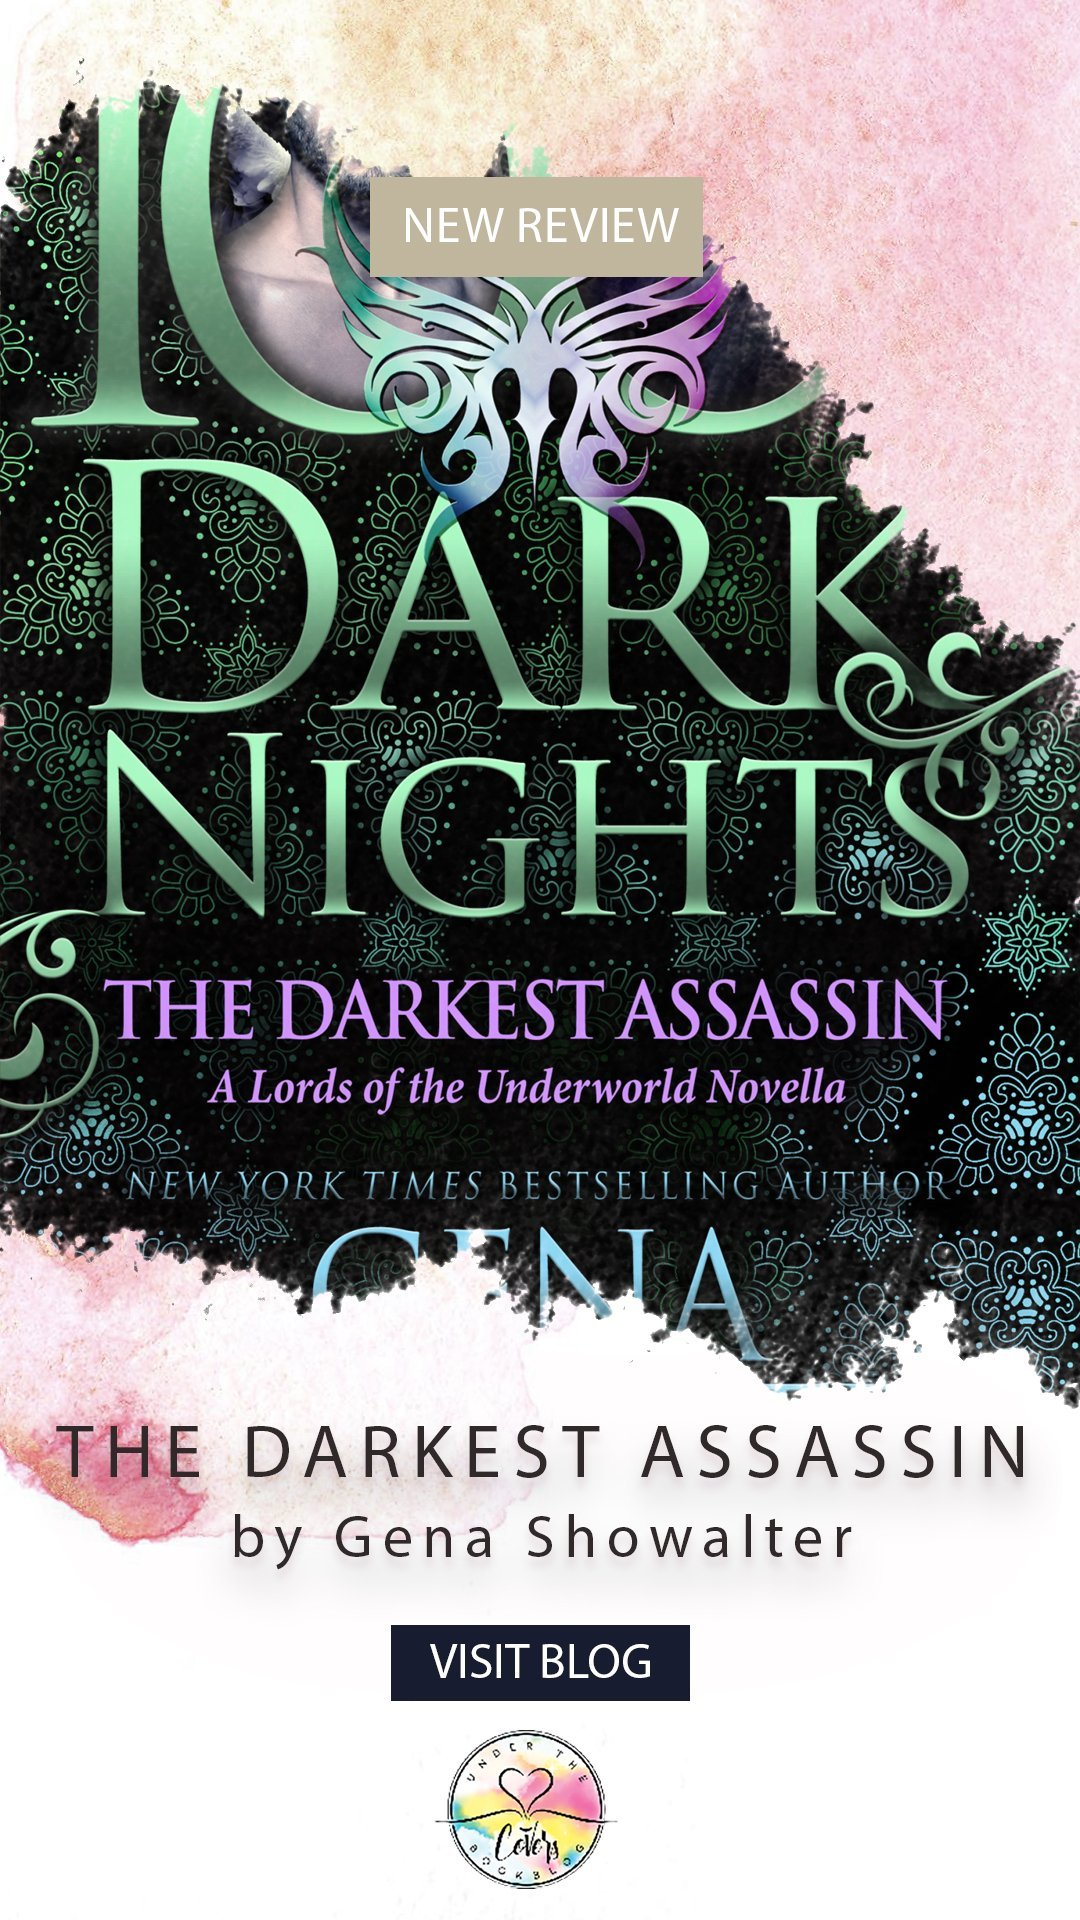 ARC Review: The Darkest Assassin by Gena Showalter